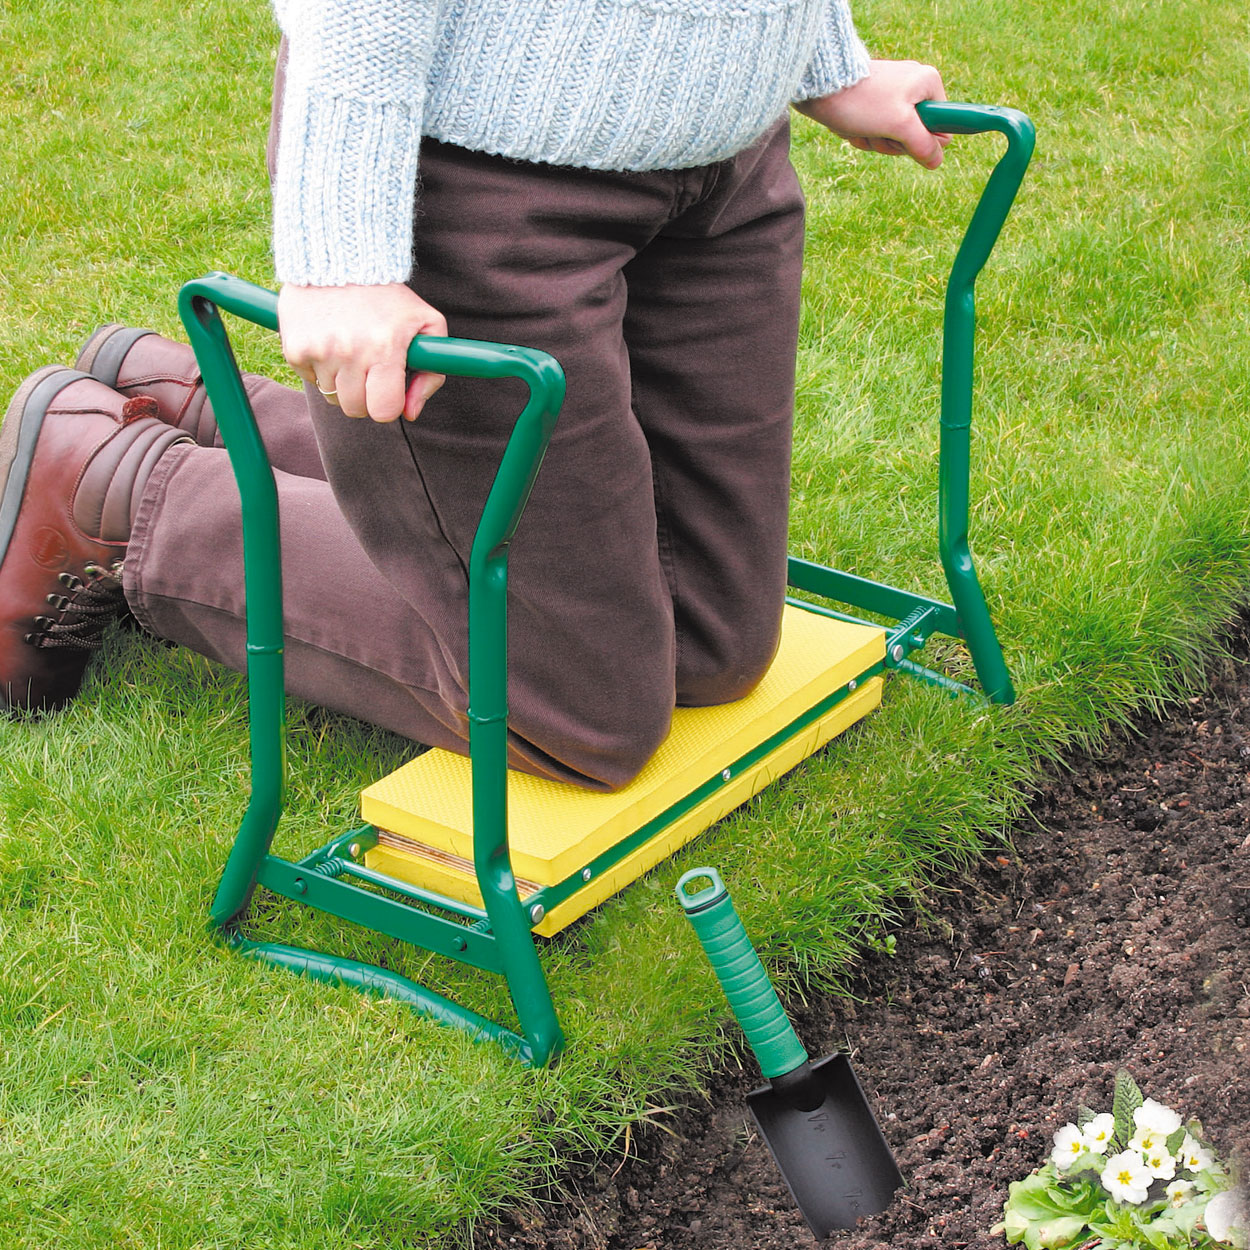 Gardening Stool For Elderly Gardening Seat For Elderly